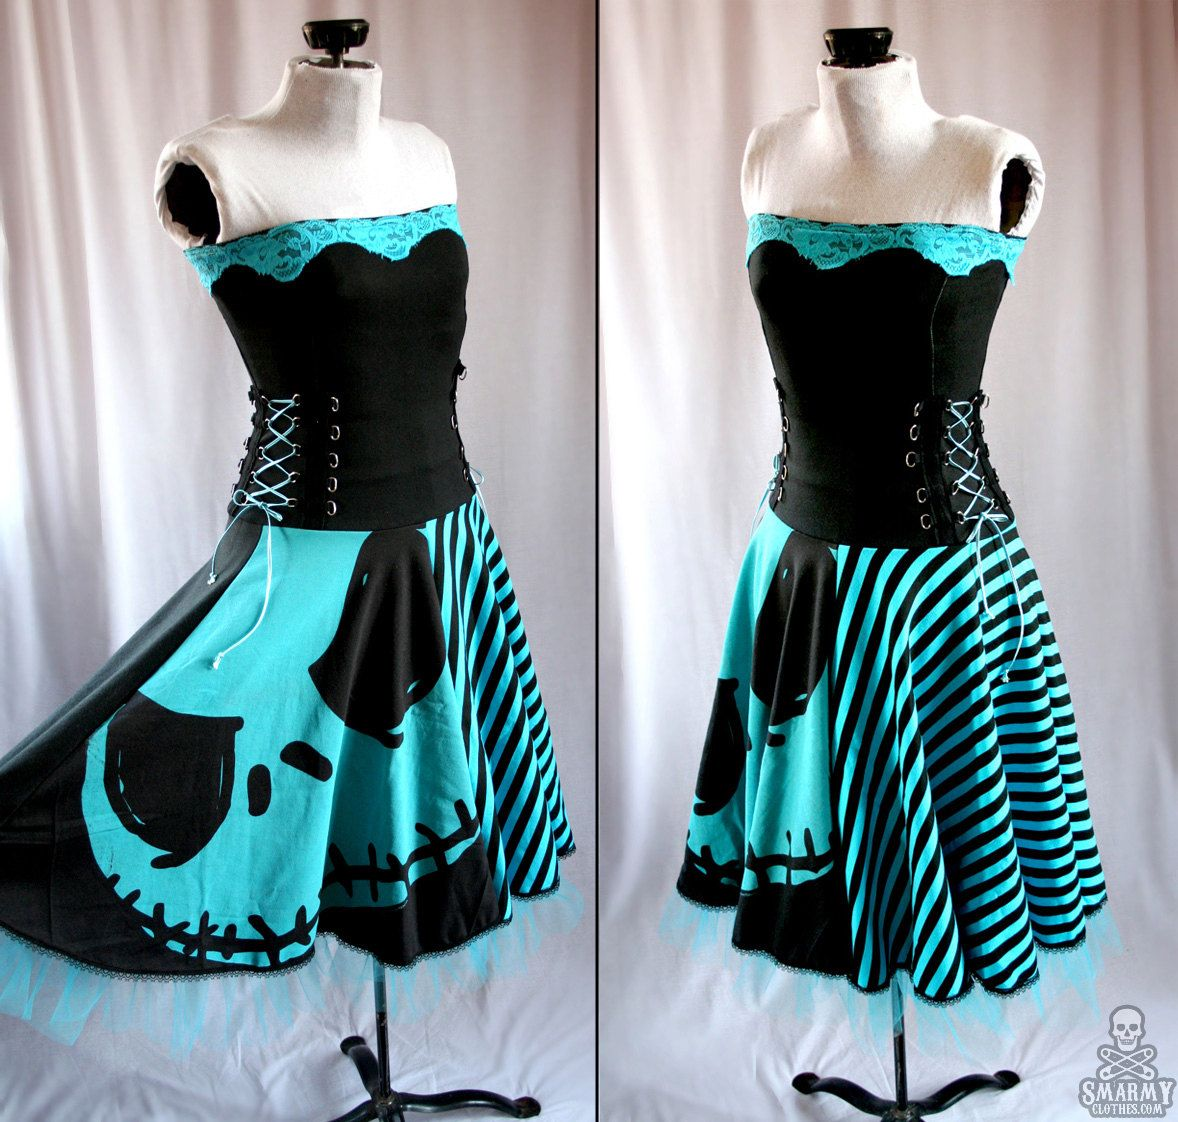 jack christmas wedding dresses 35 best images about Jack on Pinterest Nightmare before christmas Corset dresses and Perler beads